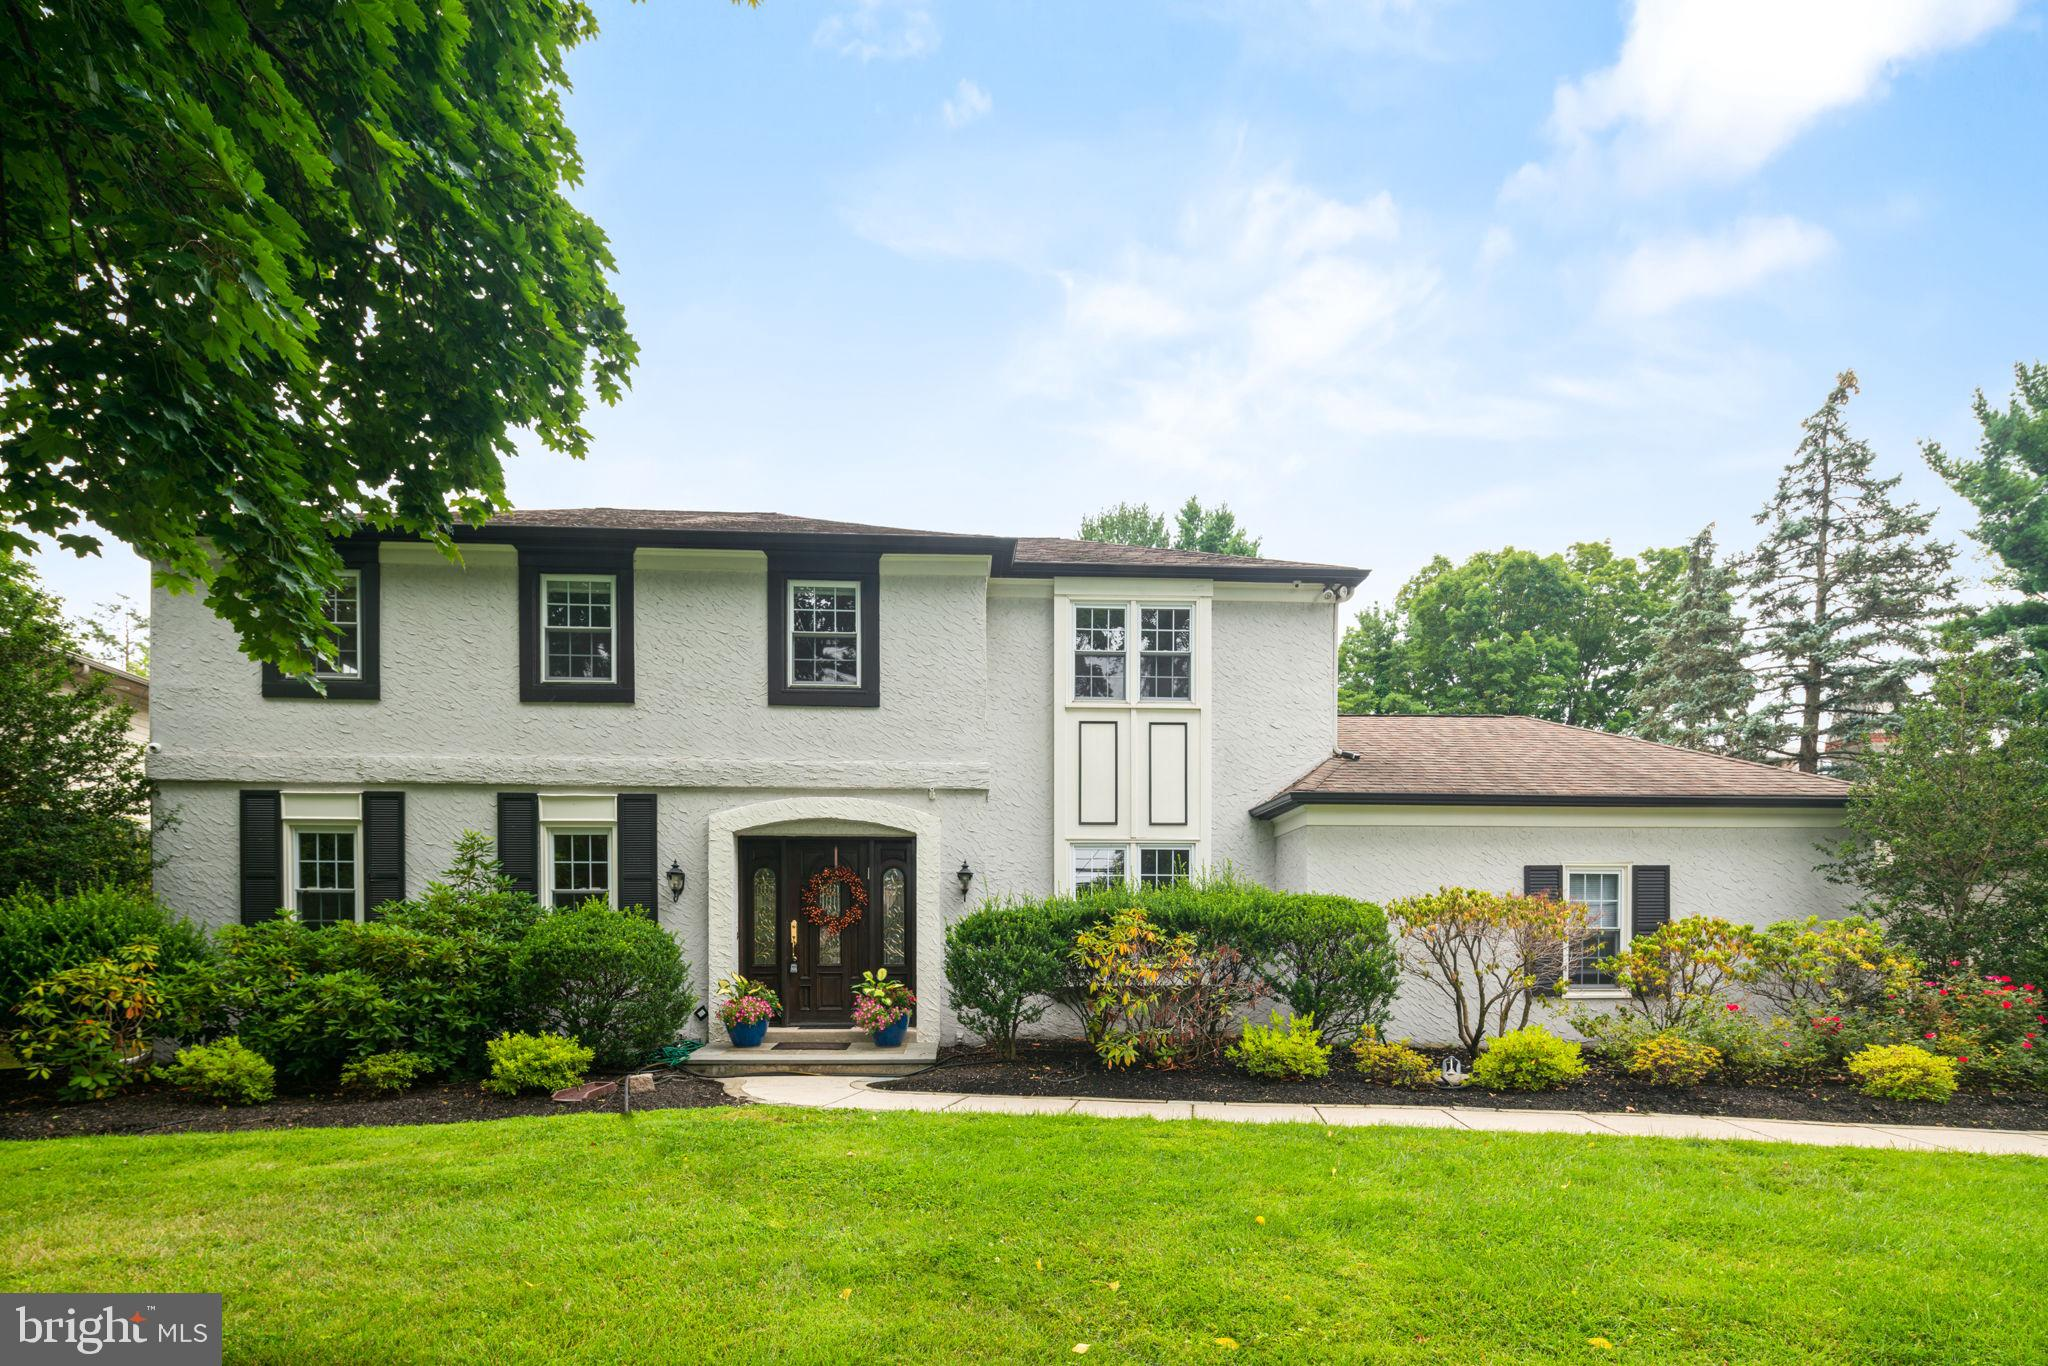 Welcome to 20 Llanberris Road! This lovely 4 bedroom, 3.5 bath colonial sits on .46 Acres with a POOL in a prime Bala Cynwyd location, in a leafy established neighborhood.  The open floor plan at 20 Llanberris features a kitchen boasting stainless appliances, granite countertops, and opens to a breakfast room and a generously-sized family room, complete with a new wood burning fireplace insert.  A double door from the family room leads you to a flat, grassy yard that provides expansive space with unlimited creative options, SWIMMING POOL, and custom pool house. The formal living room connects to the family room and allows the first floor to be flooded with natural light. A nice-sized dining room is separated from the kitchen with a french door.   The first floor powder room has a door that opens directly to the backyard; perfect for access from the pool. The attached 2-door garage with new garage door and newly paved driveway,  leads directly into the kitchen.  The second floor w/beautifully refinished hardwood floors includes four generously sized bedrooms. The master suite has a renovated master bath featuring a frameless, triple-head walk-in shower, double vanities and a soaking tub.  Room for all of your clothing and accessories can be neatly stored in the walk-in closet.  Three additional bedrooms and newly renovated hall bath complete the 2nd floor.   The finished basement offers a multi-purpose room, separate room for a potential office, full bathroom, and laundry.  Short walk to Cynwyd Park, Cynwyd train, Cynwyd Tennis Club, Cynwyd Heritage Trail and Bala and Montgomery Ave  shops and dining. Nationally recognized Lower Merion School District, quick access to I-76 and center city, the Airport, and the Jersey Shore makes this an ideally located home, ready for move-in.